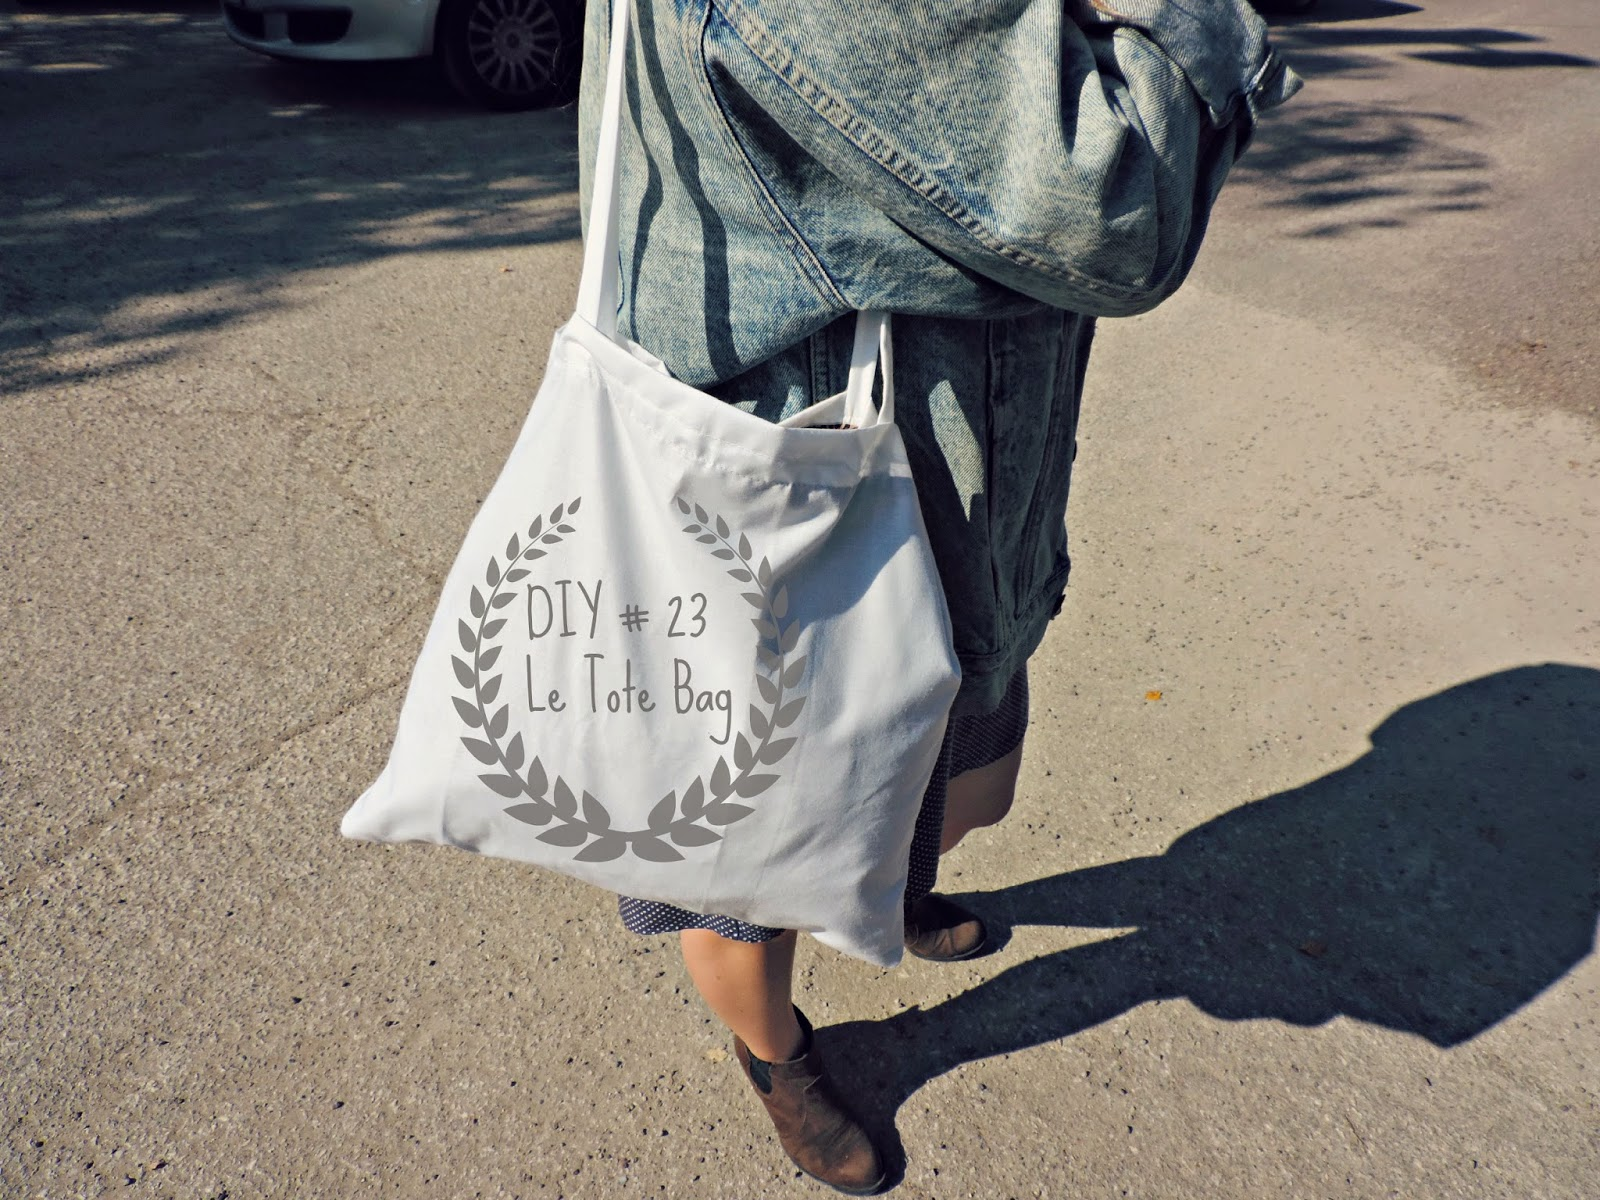 http://mynameisgeorges.blogspot.com/2014/10/diy-23-le-tote-bag.html